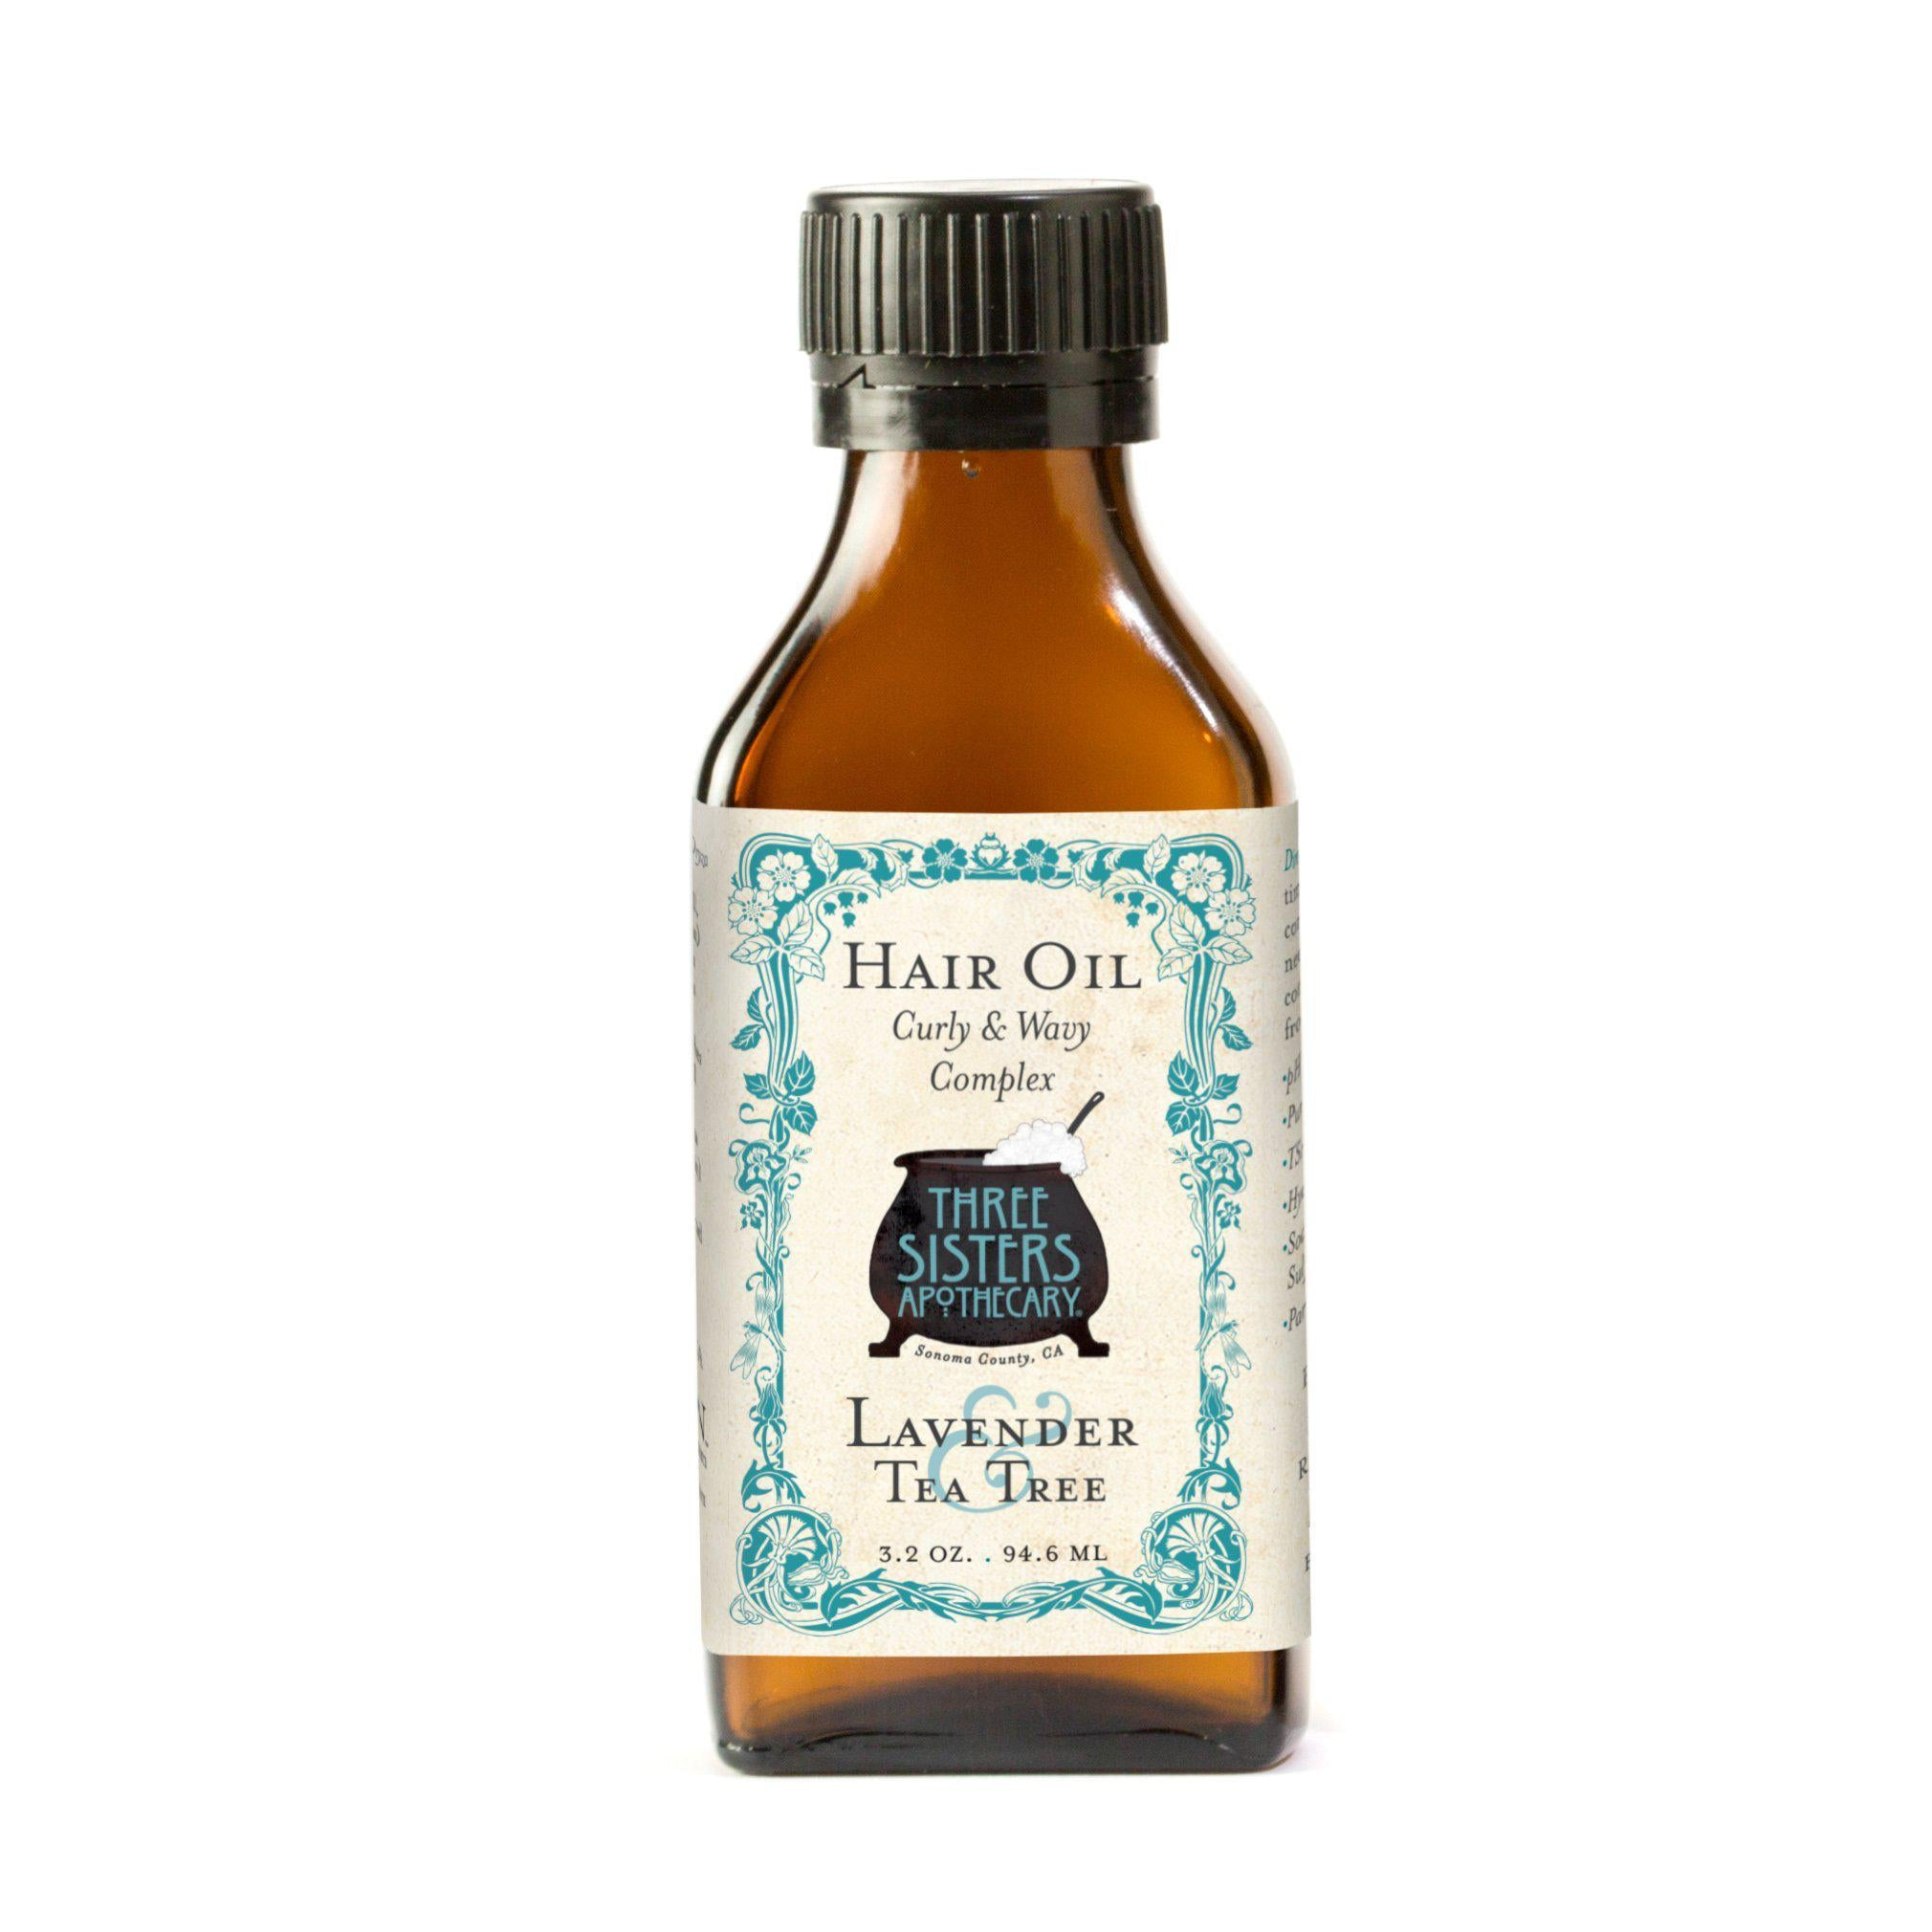 Mandarin Blossom & Calendula Leave-In Conditioning Hair Oil - 3.2 oz.